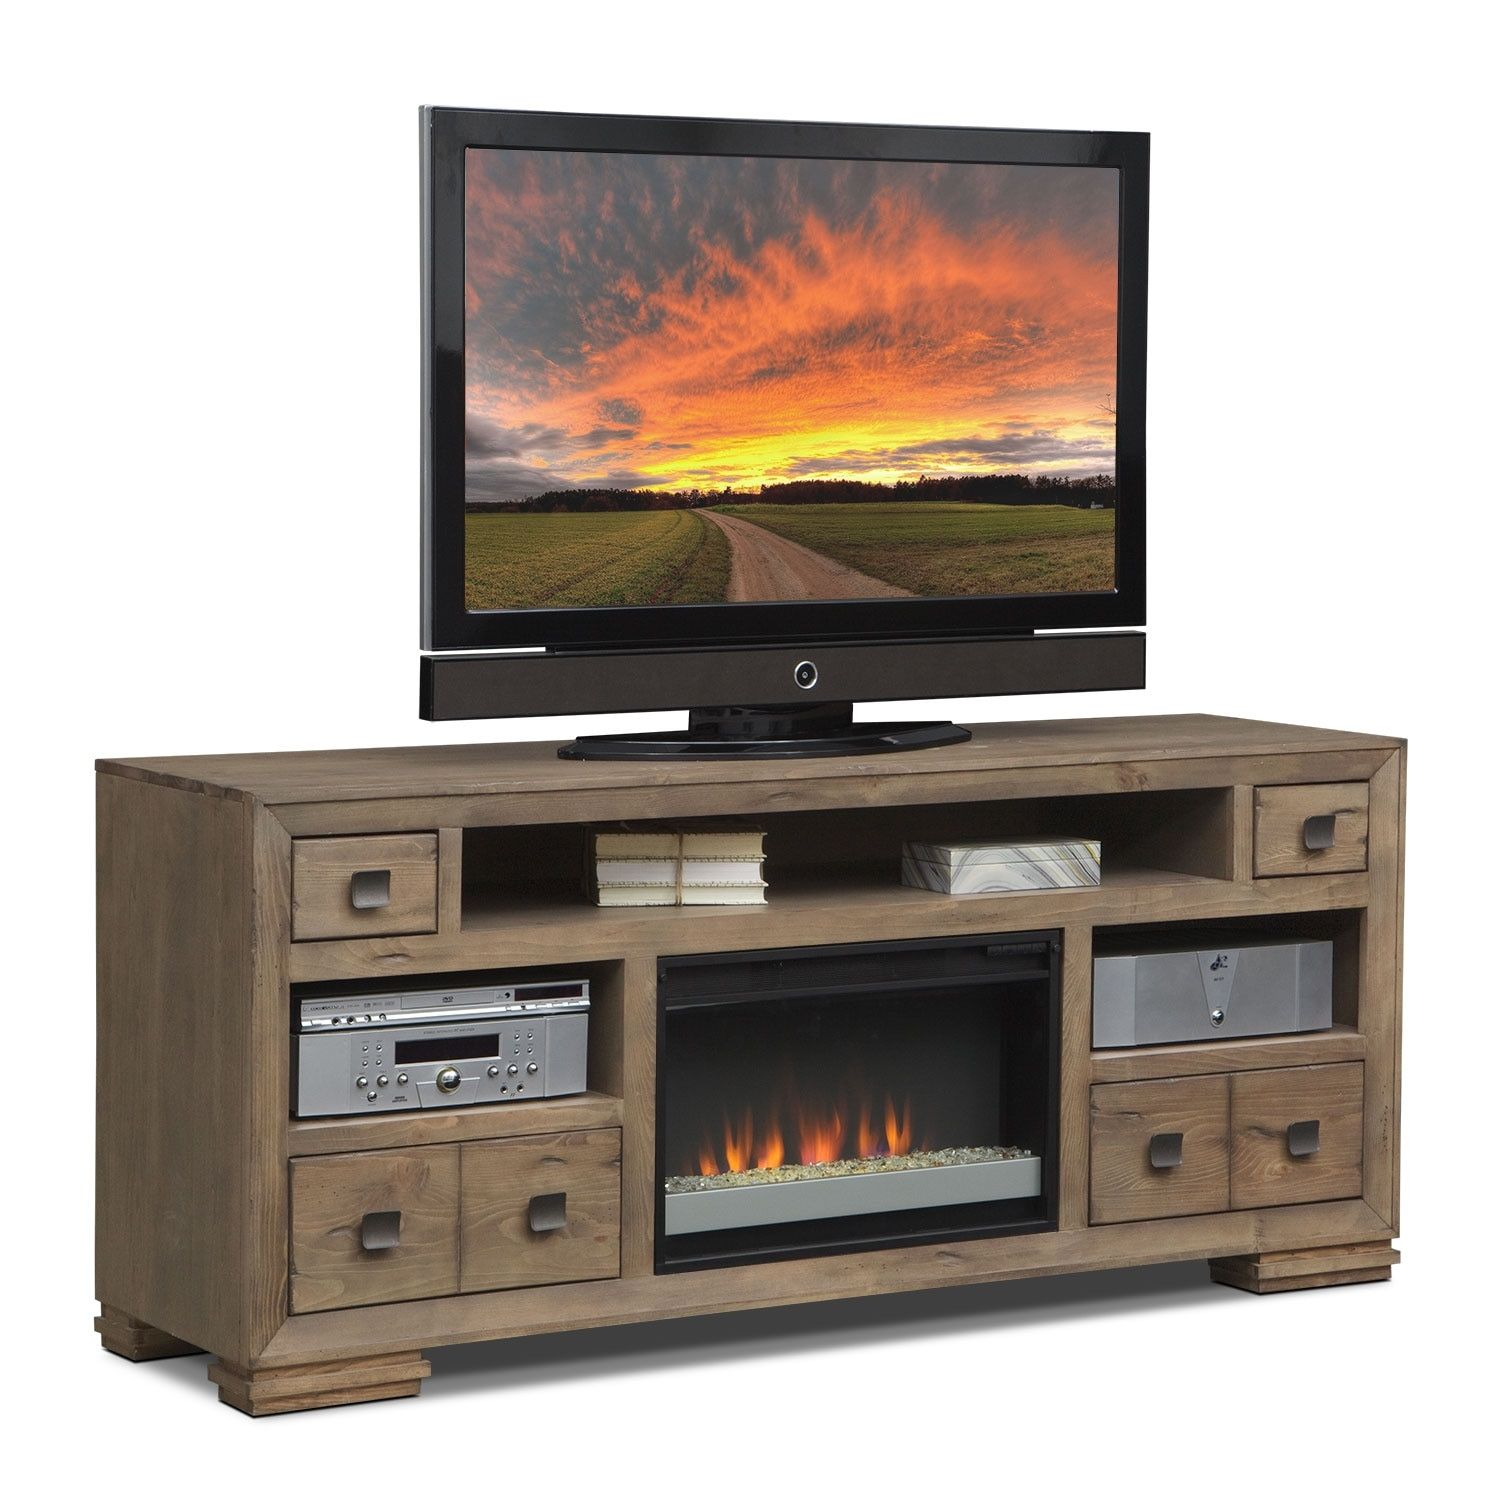 opening entertainment piece fireplace tv firebox furniture and log search fireplaces media brick centre center accent electric home camden with the decor